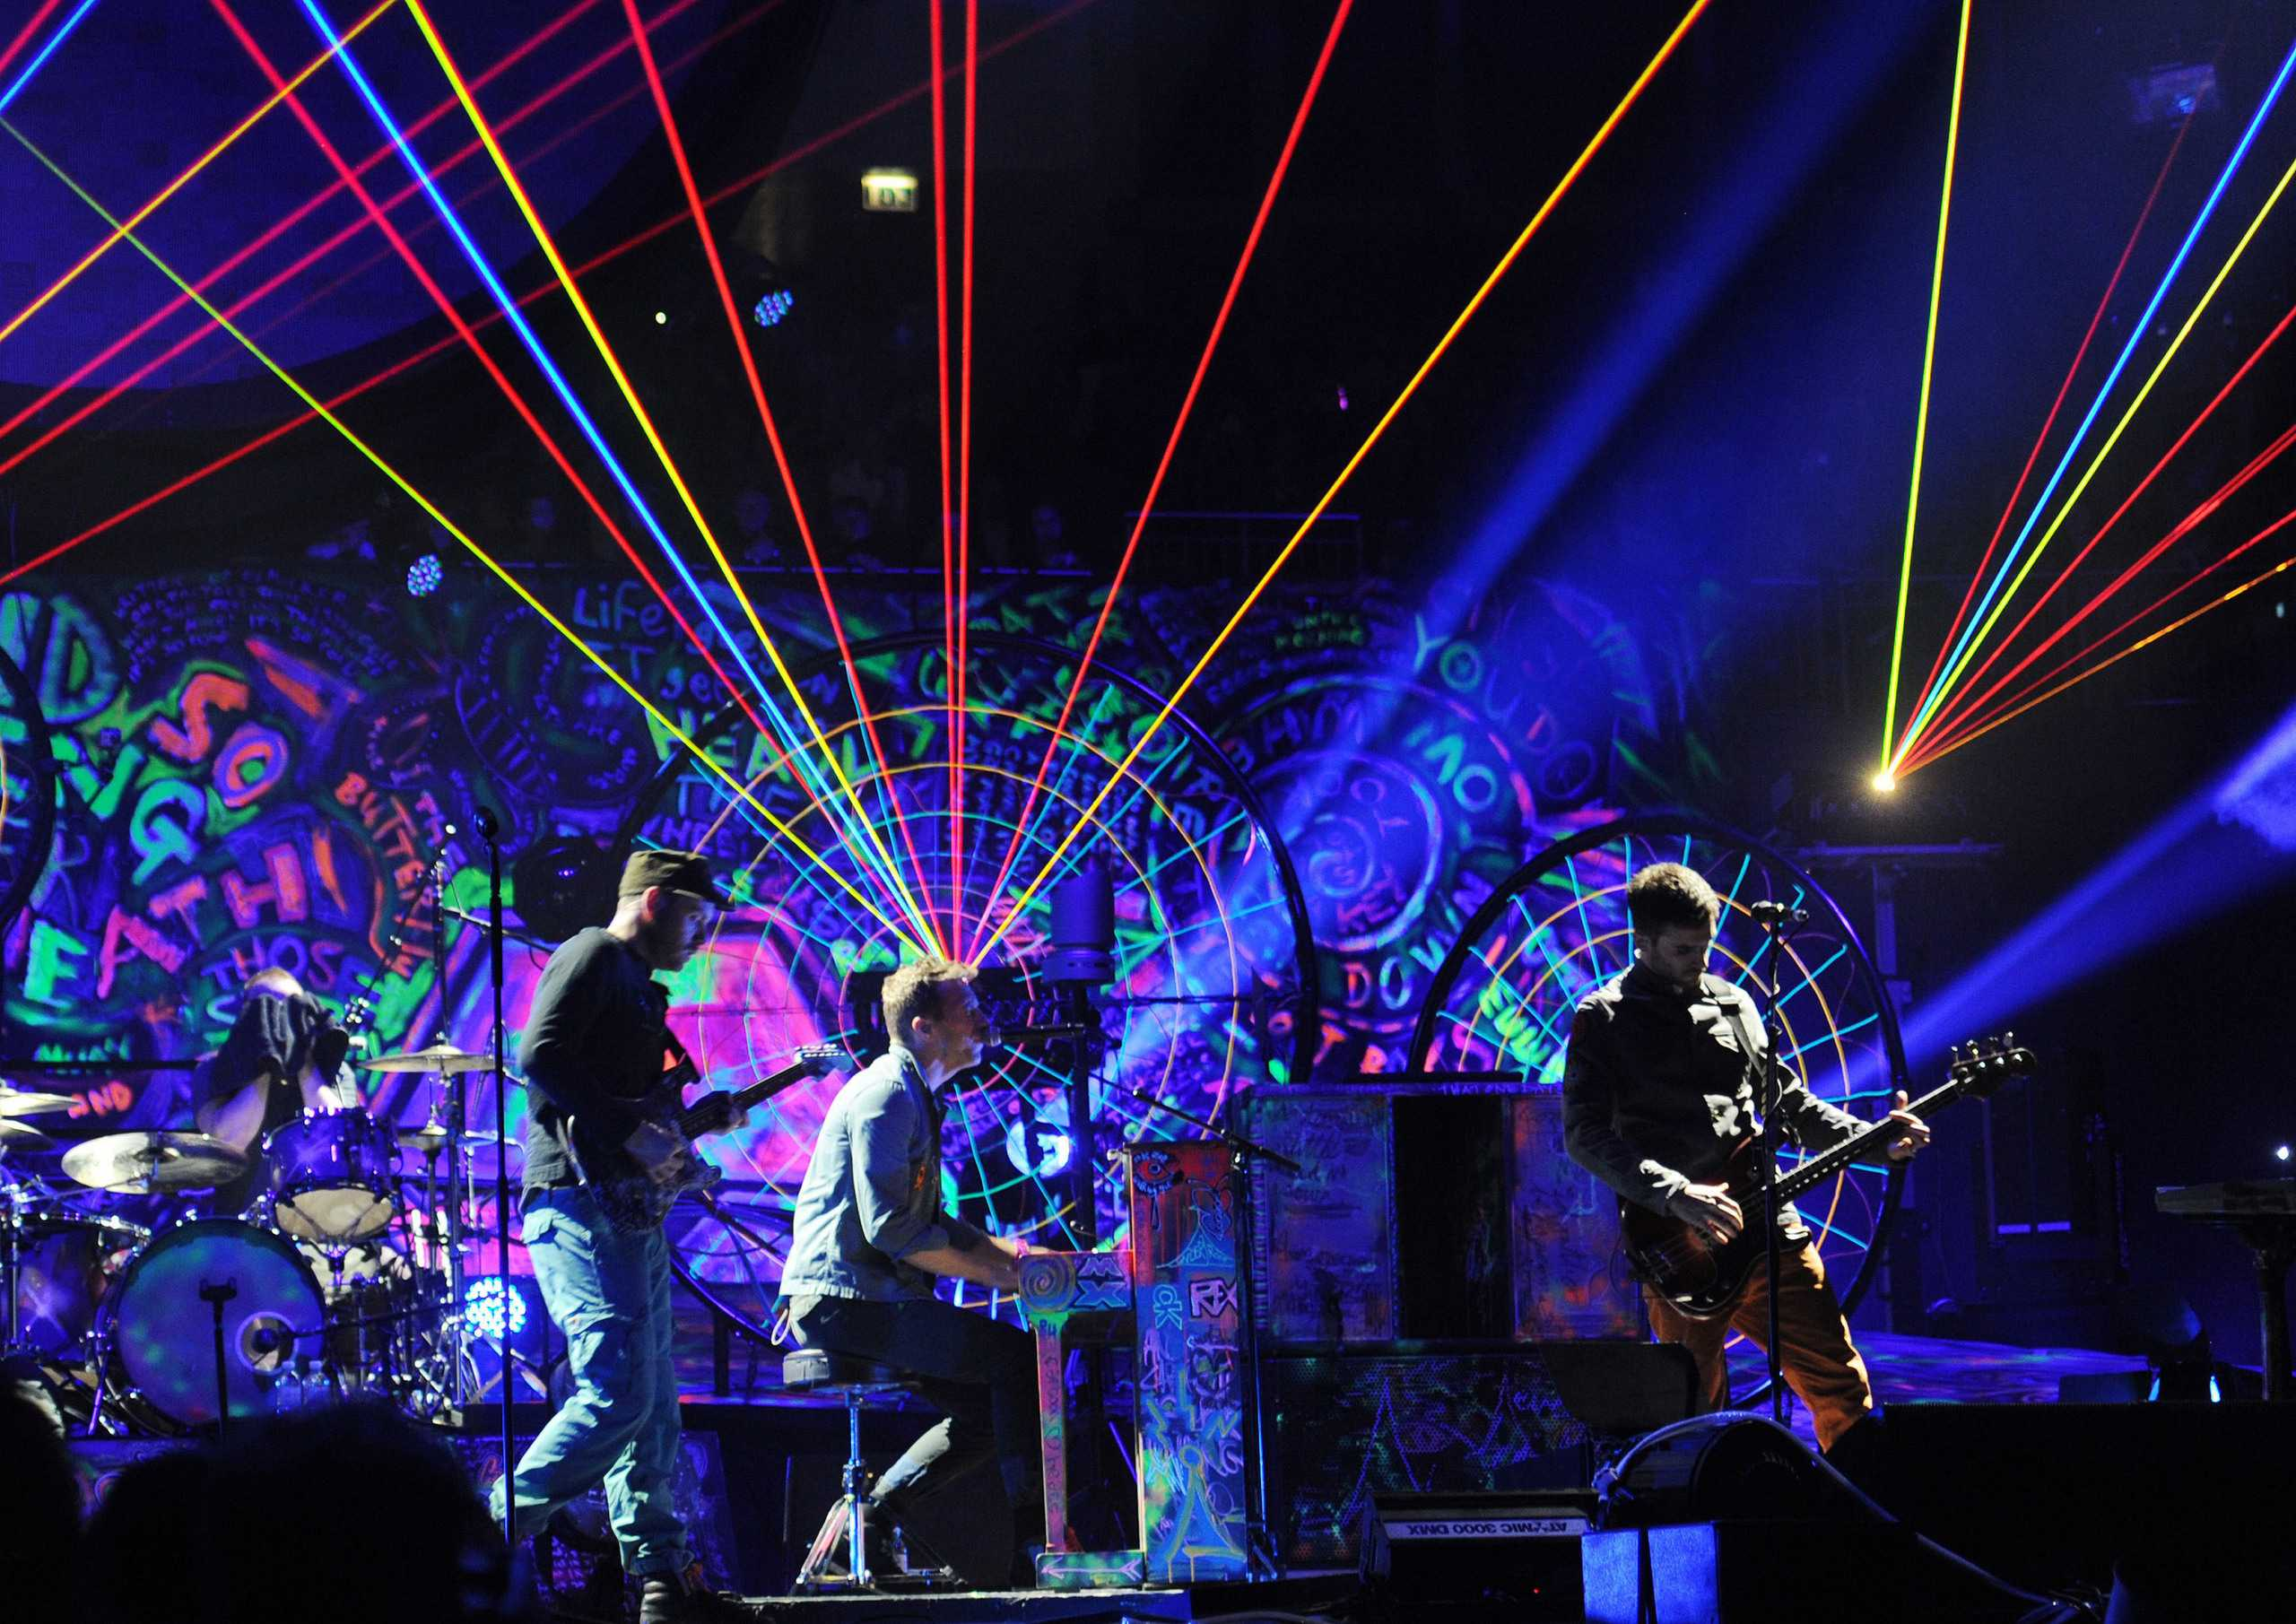 Mylo Xyloto tour: Last chance to see Coldplay for 3 years